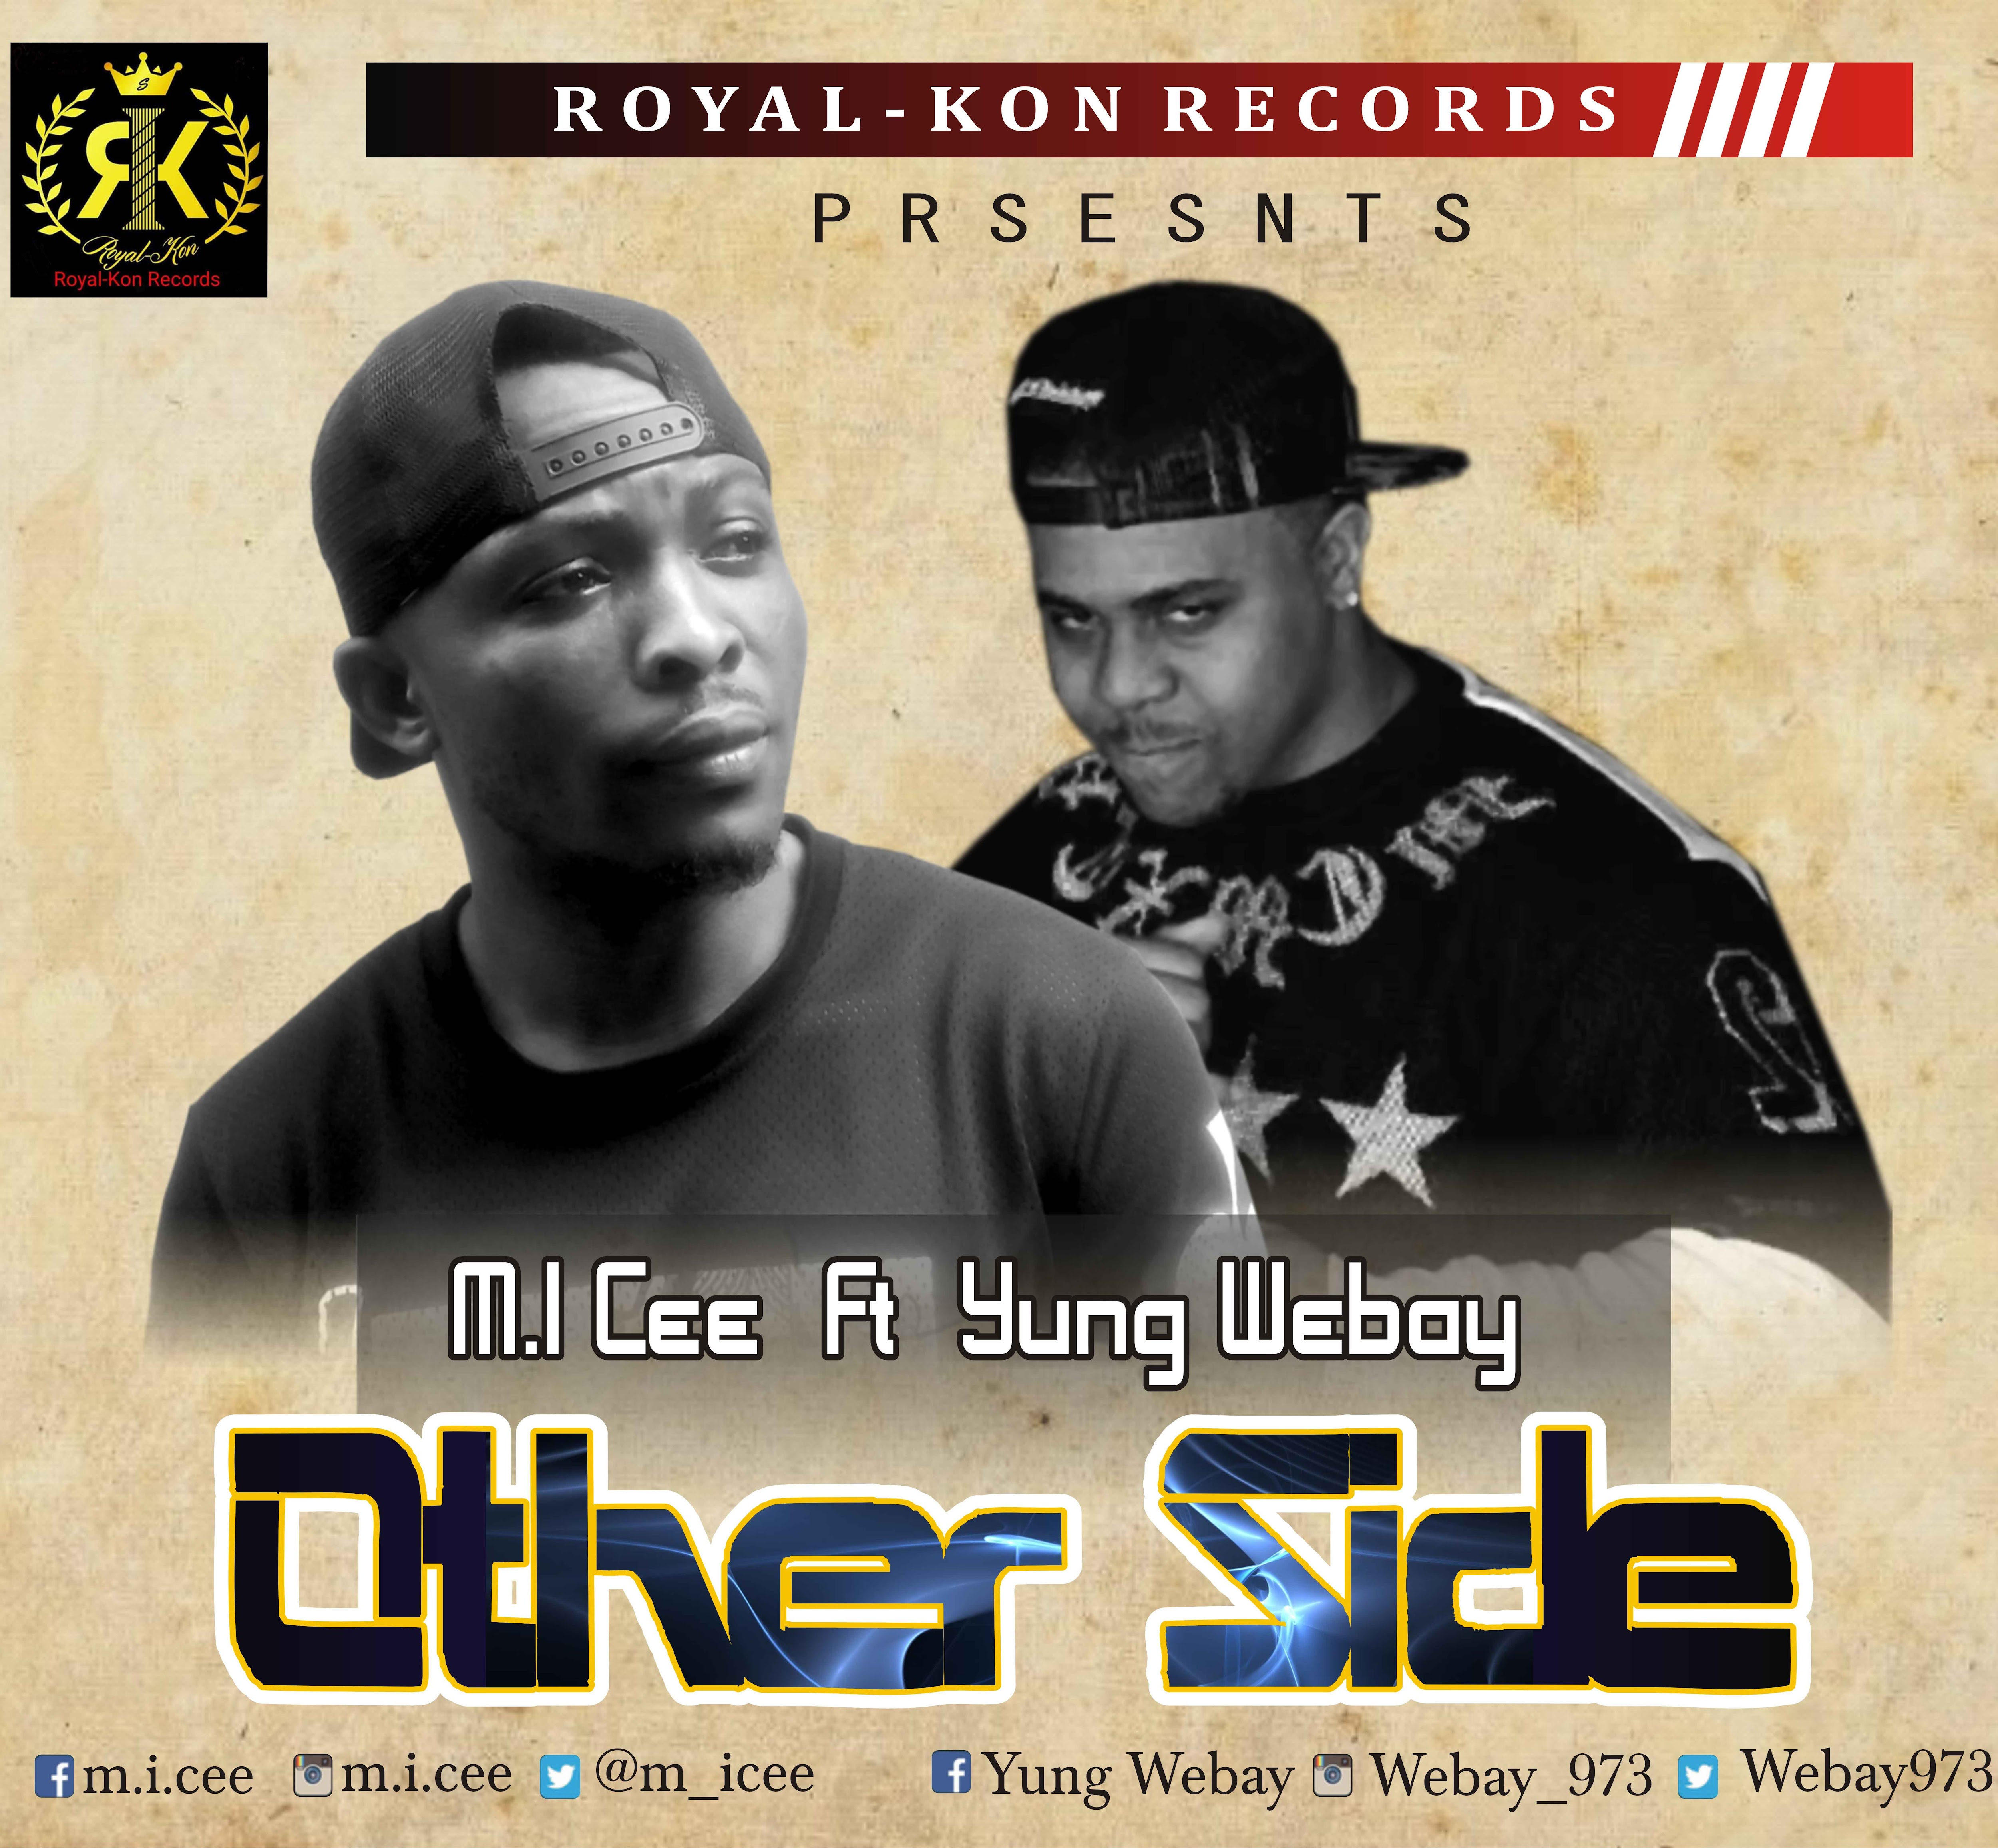 """[MUSIC]: M.I. CEE - """"OTHER SIDE"""" (ft. Yung Webay)"""